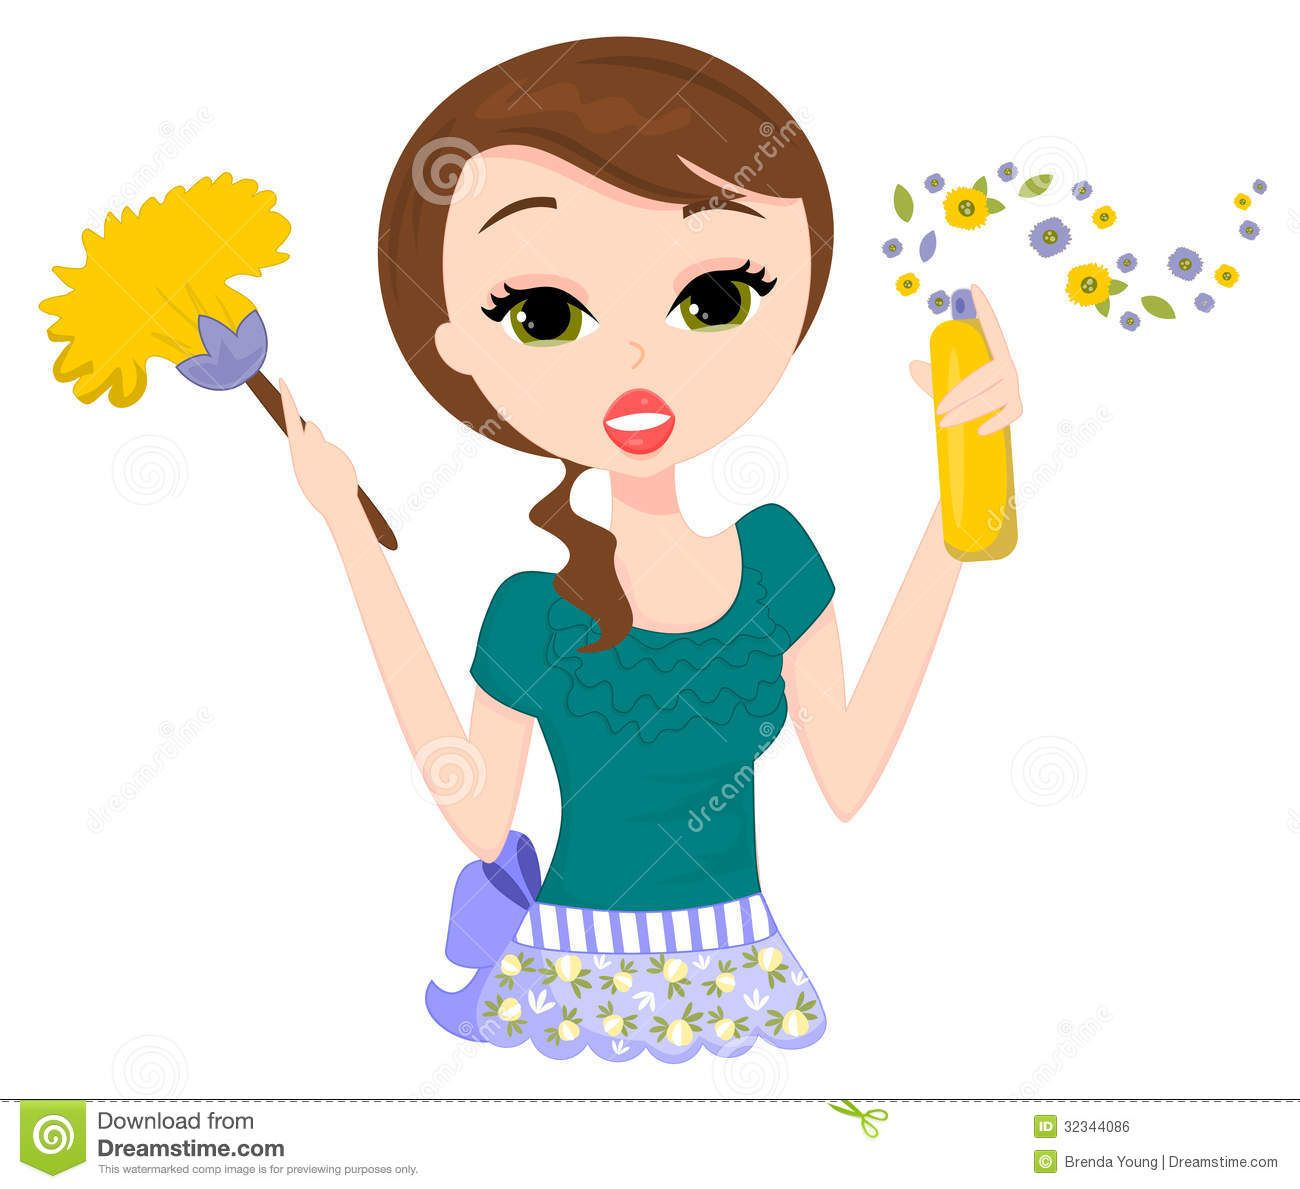 s cleaning clip. Attention clipart lady